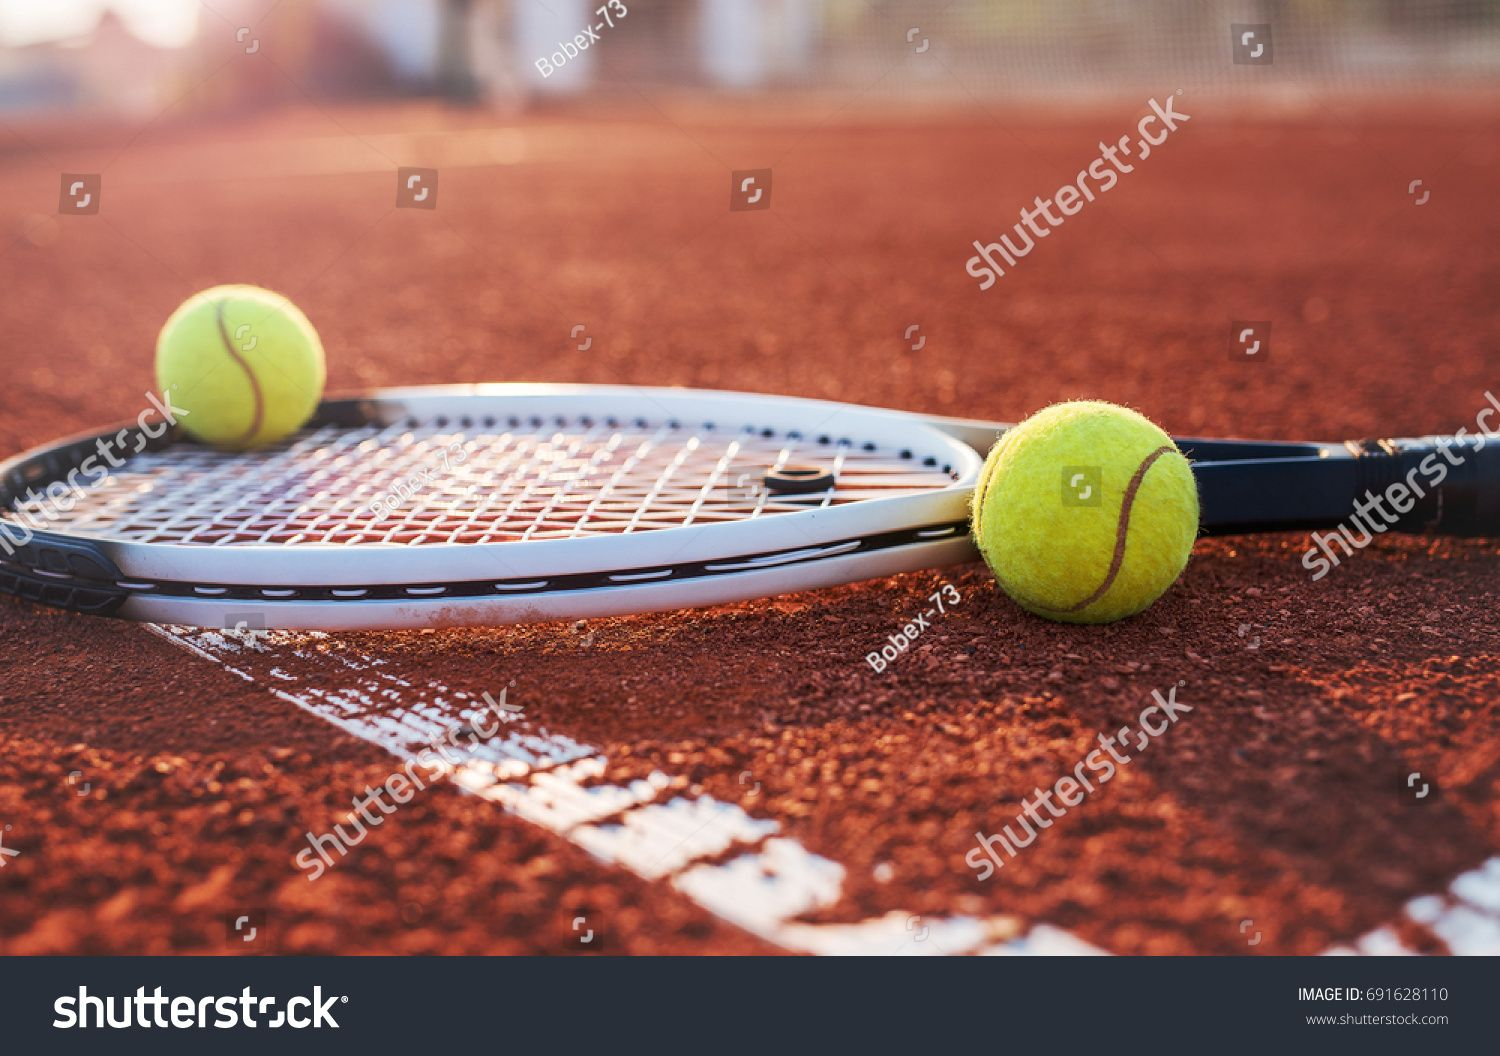 Tennis Game Tennis Ball With Racket On The Tennis Court Sport Recreation Concept Ad Ad Ball Racket Tennis Game Tennis Games Tennis Ball Tennis